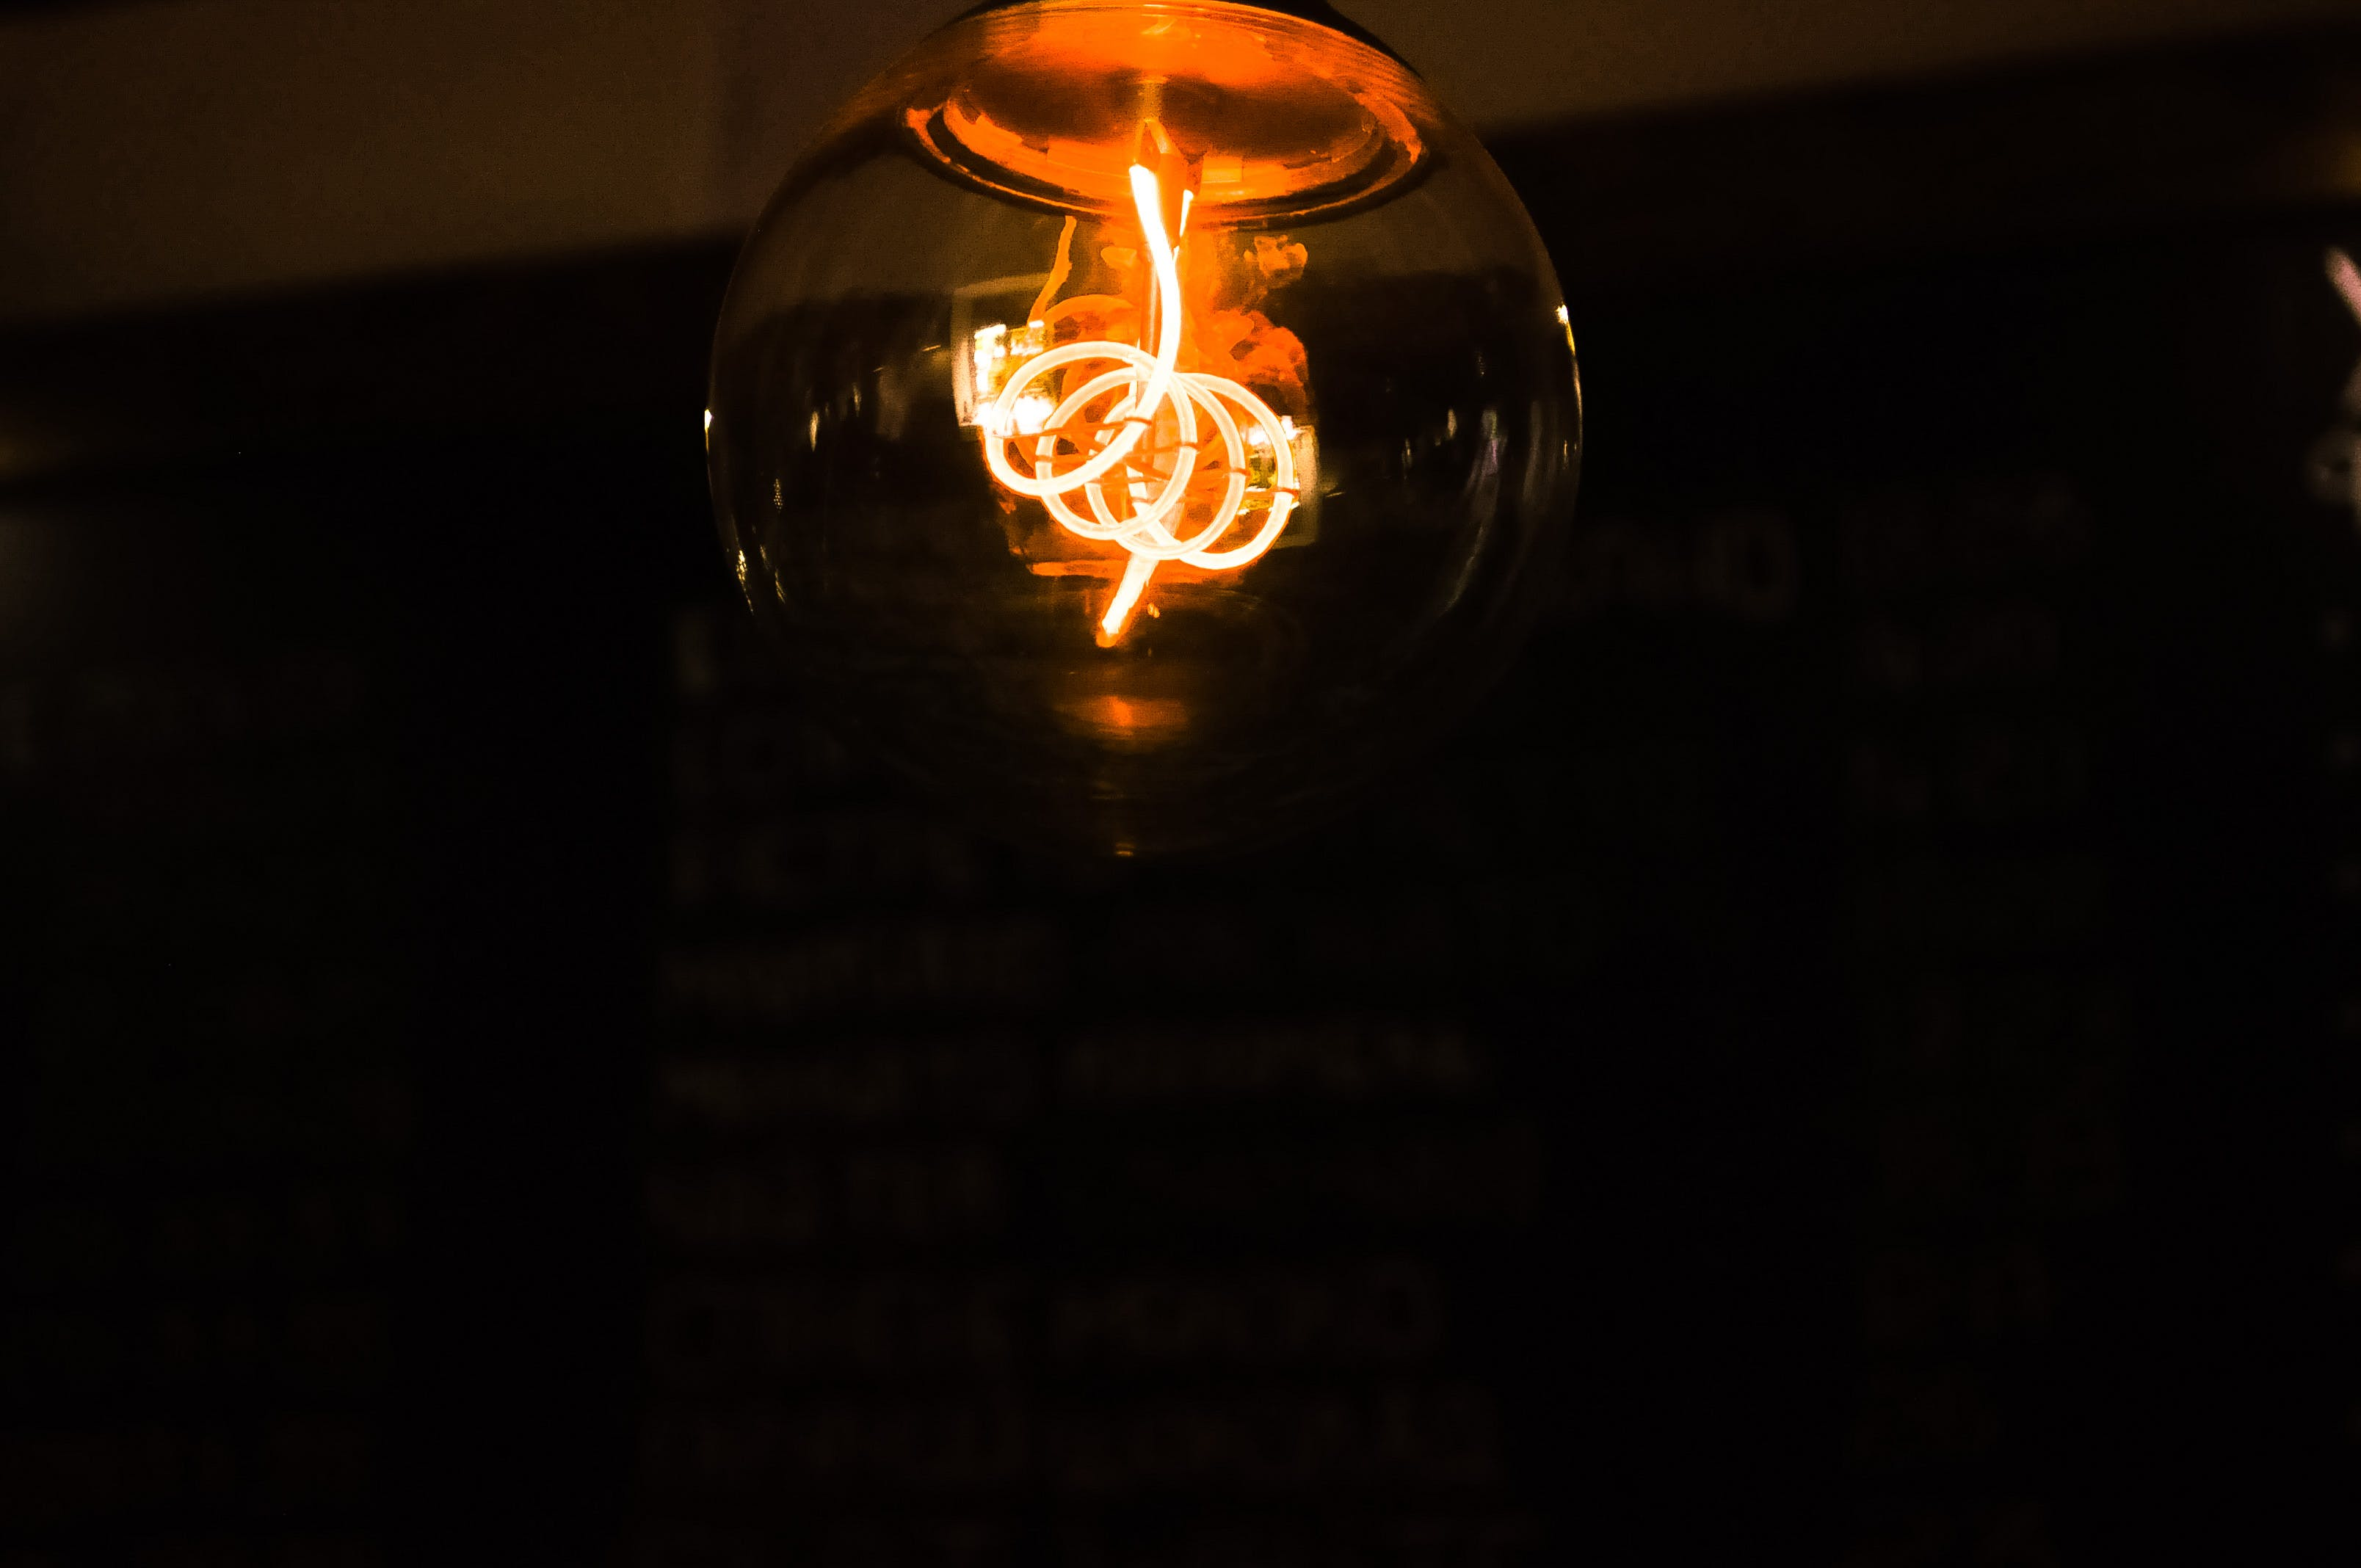 Showing Orange Coil Light